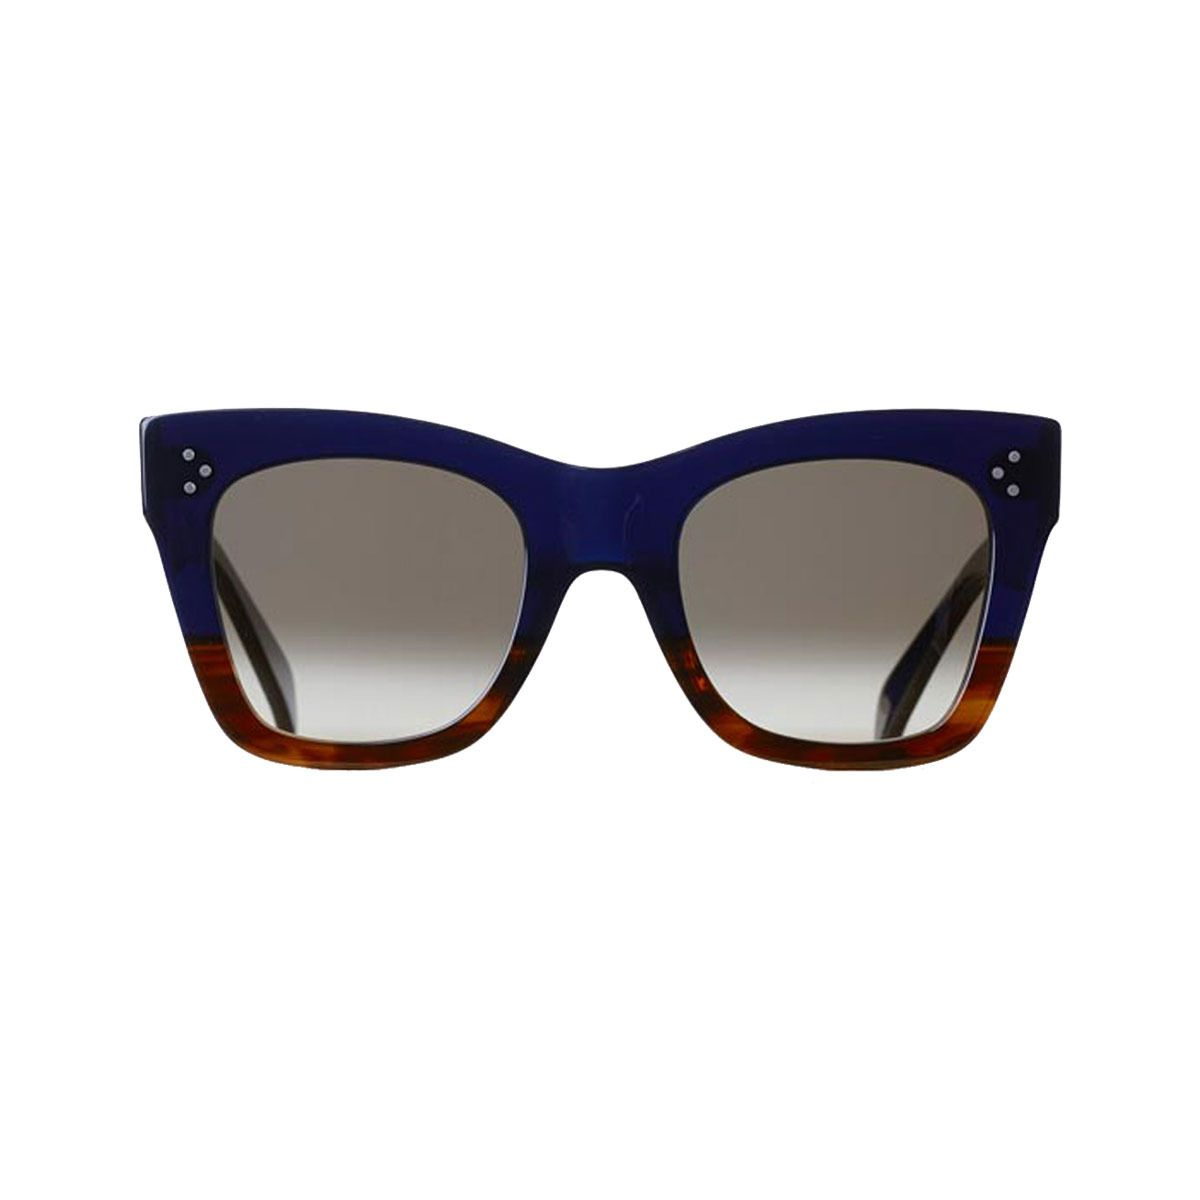 celine catherine sunglasses blue